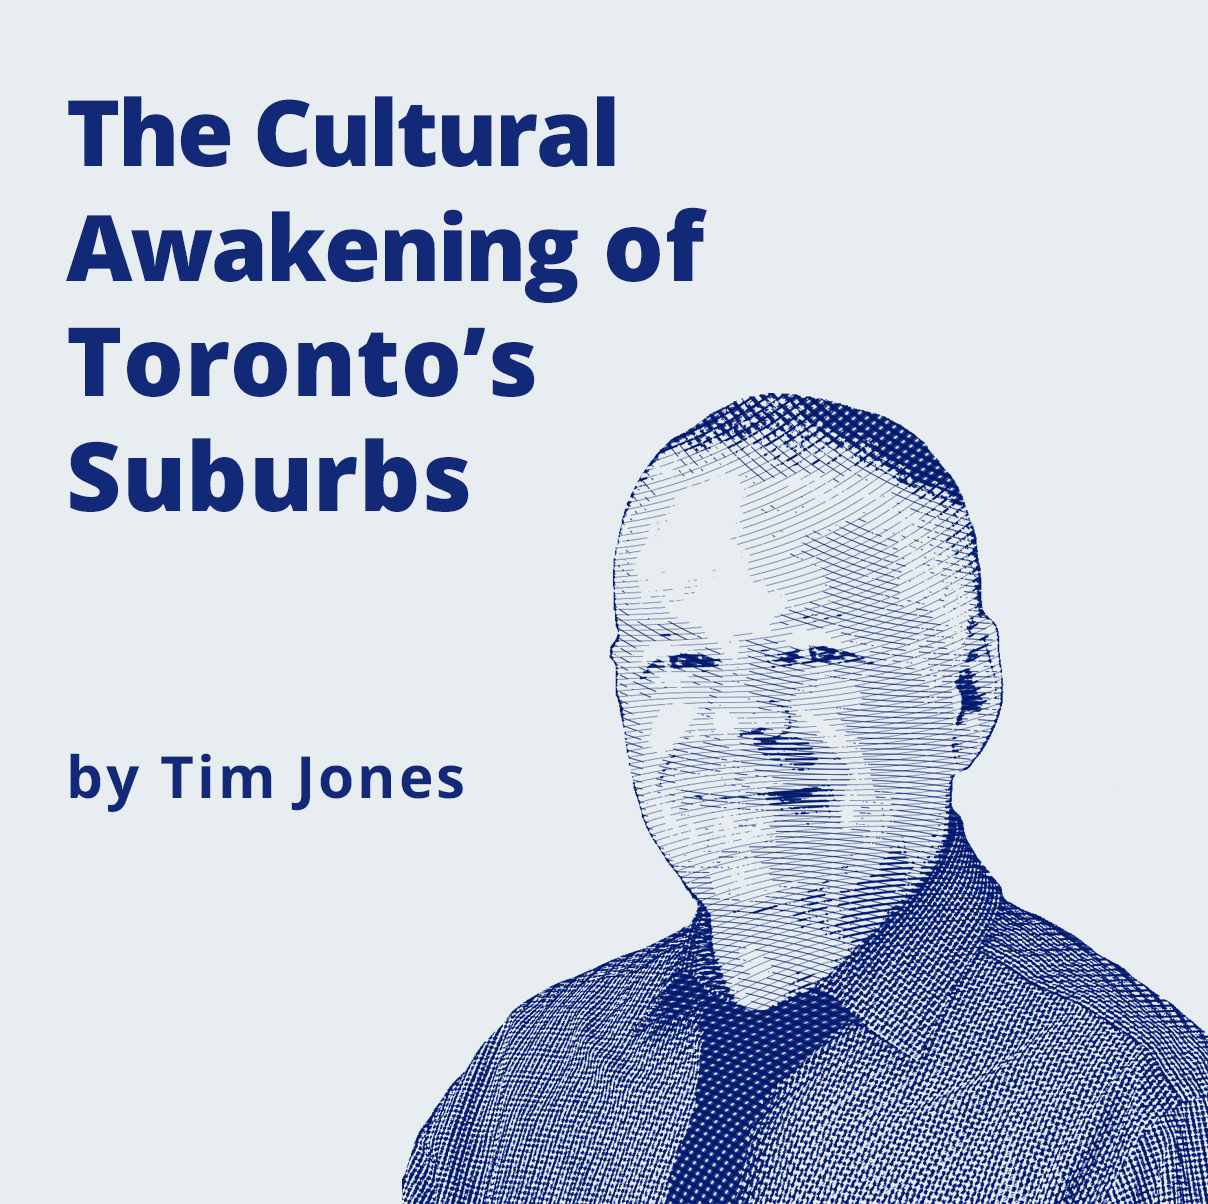 image - The Cultural Awakening of Toronto's Suburbs by Tim Jones